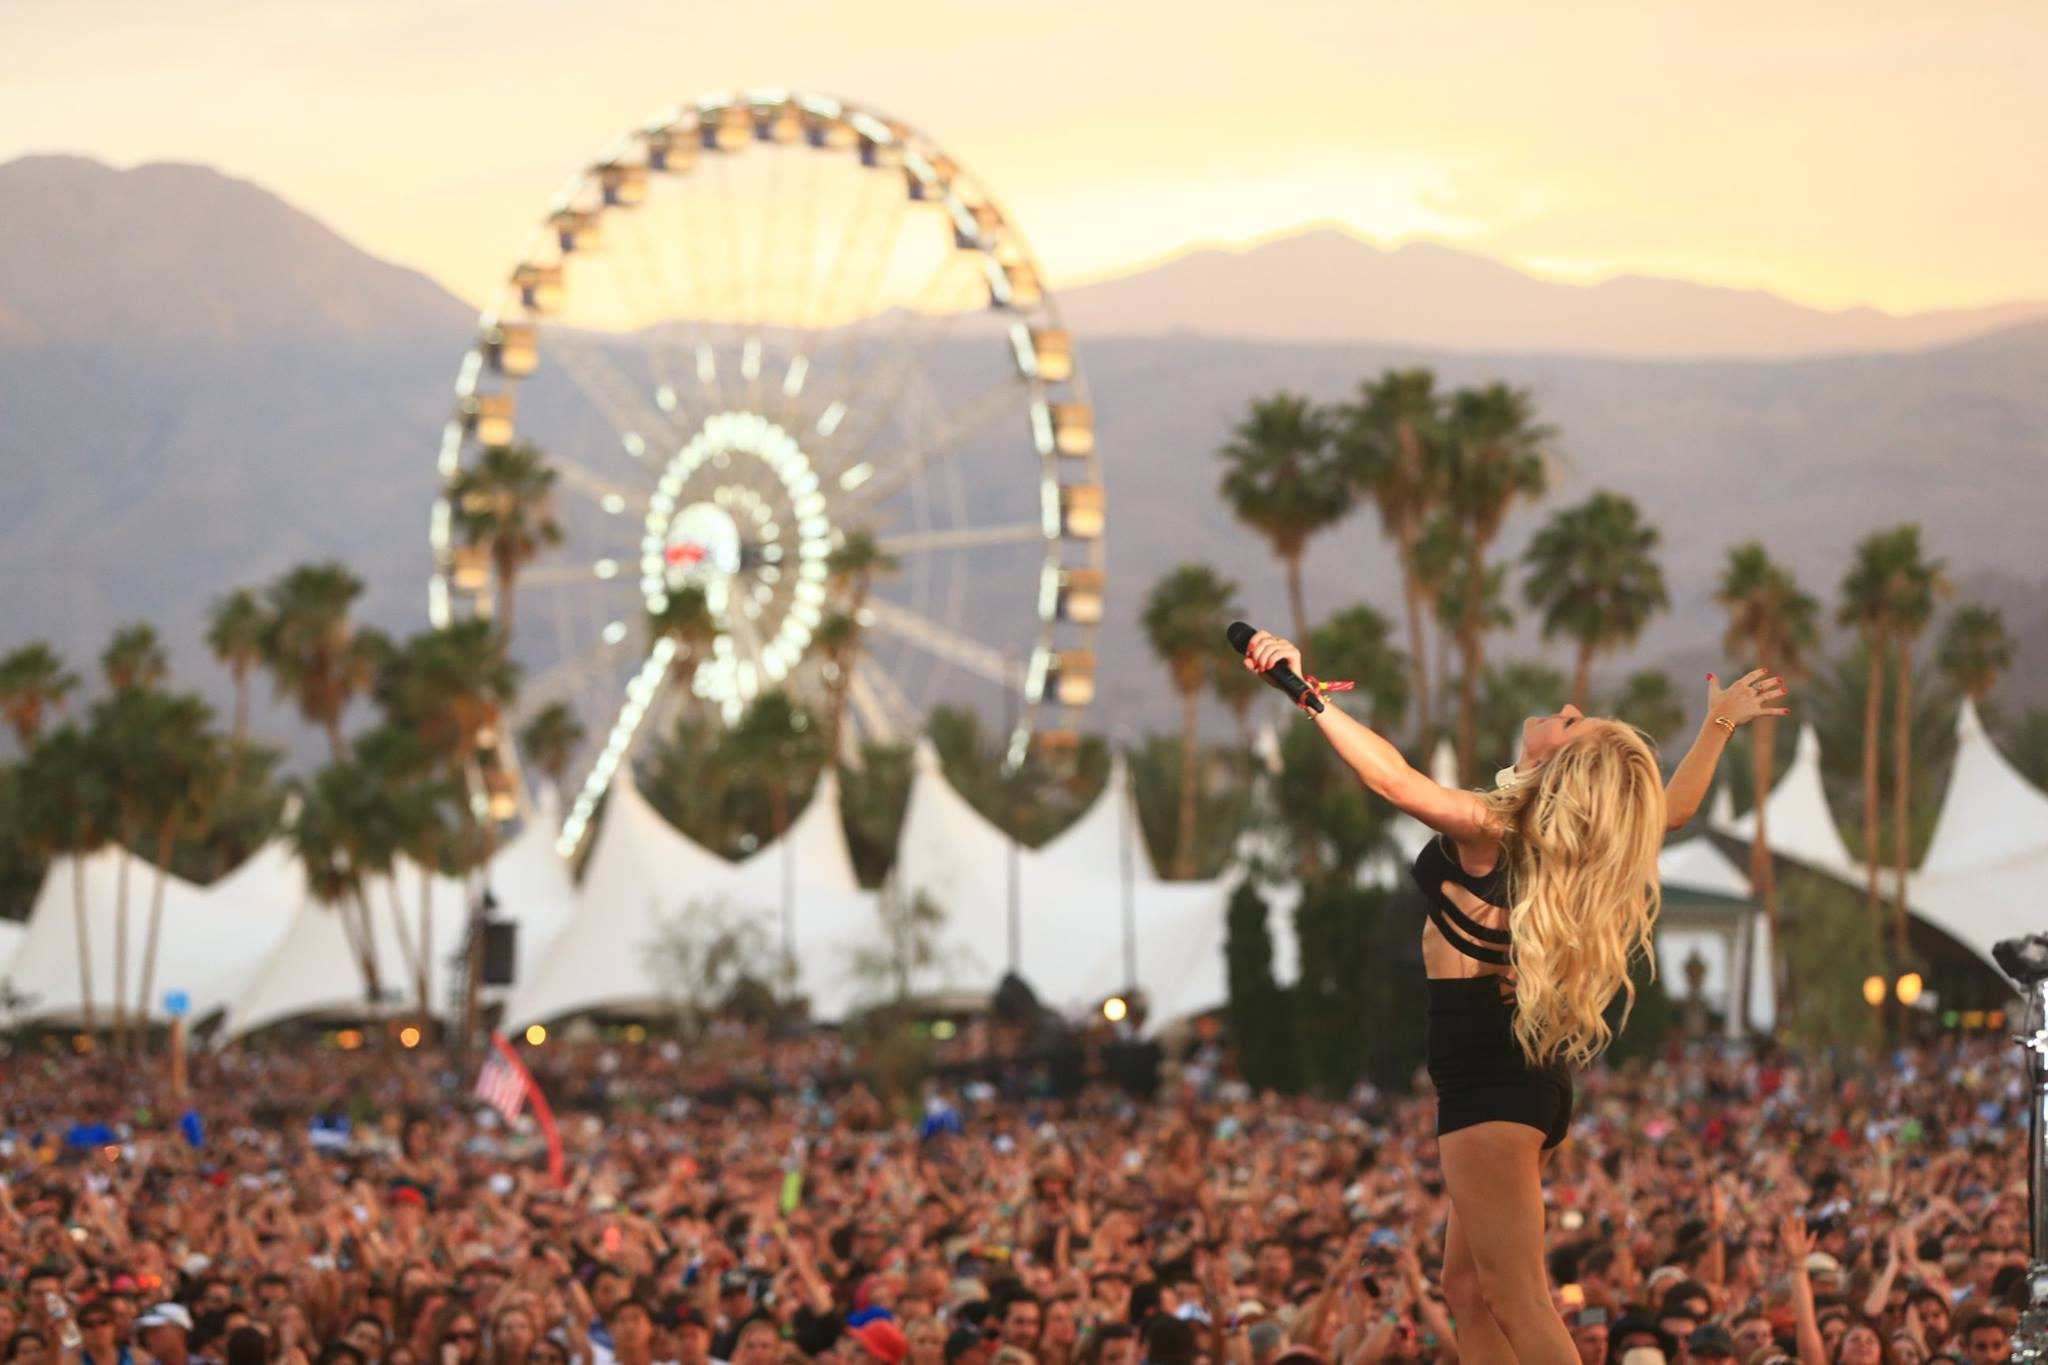 ellie-goulding-coachella-facing-crowd.jpg